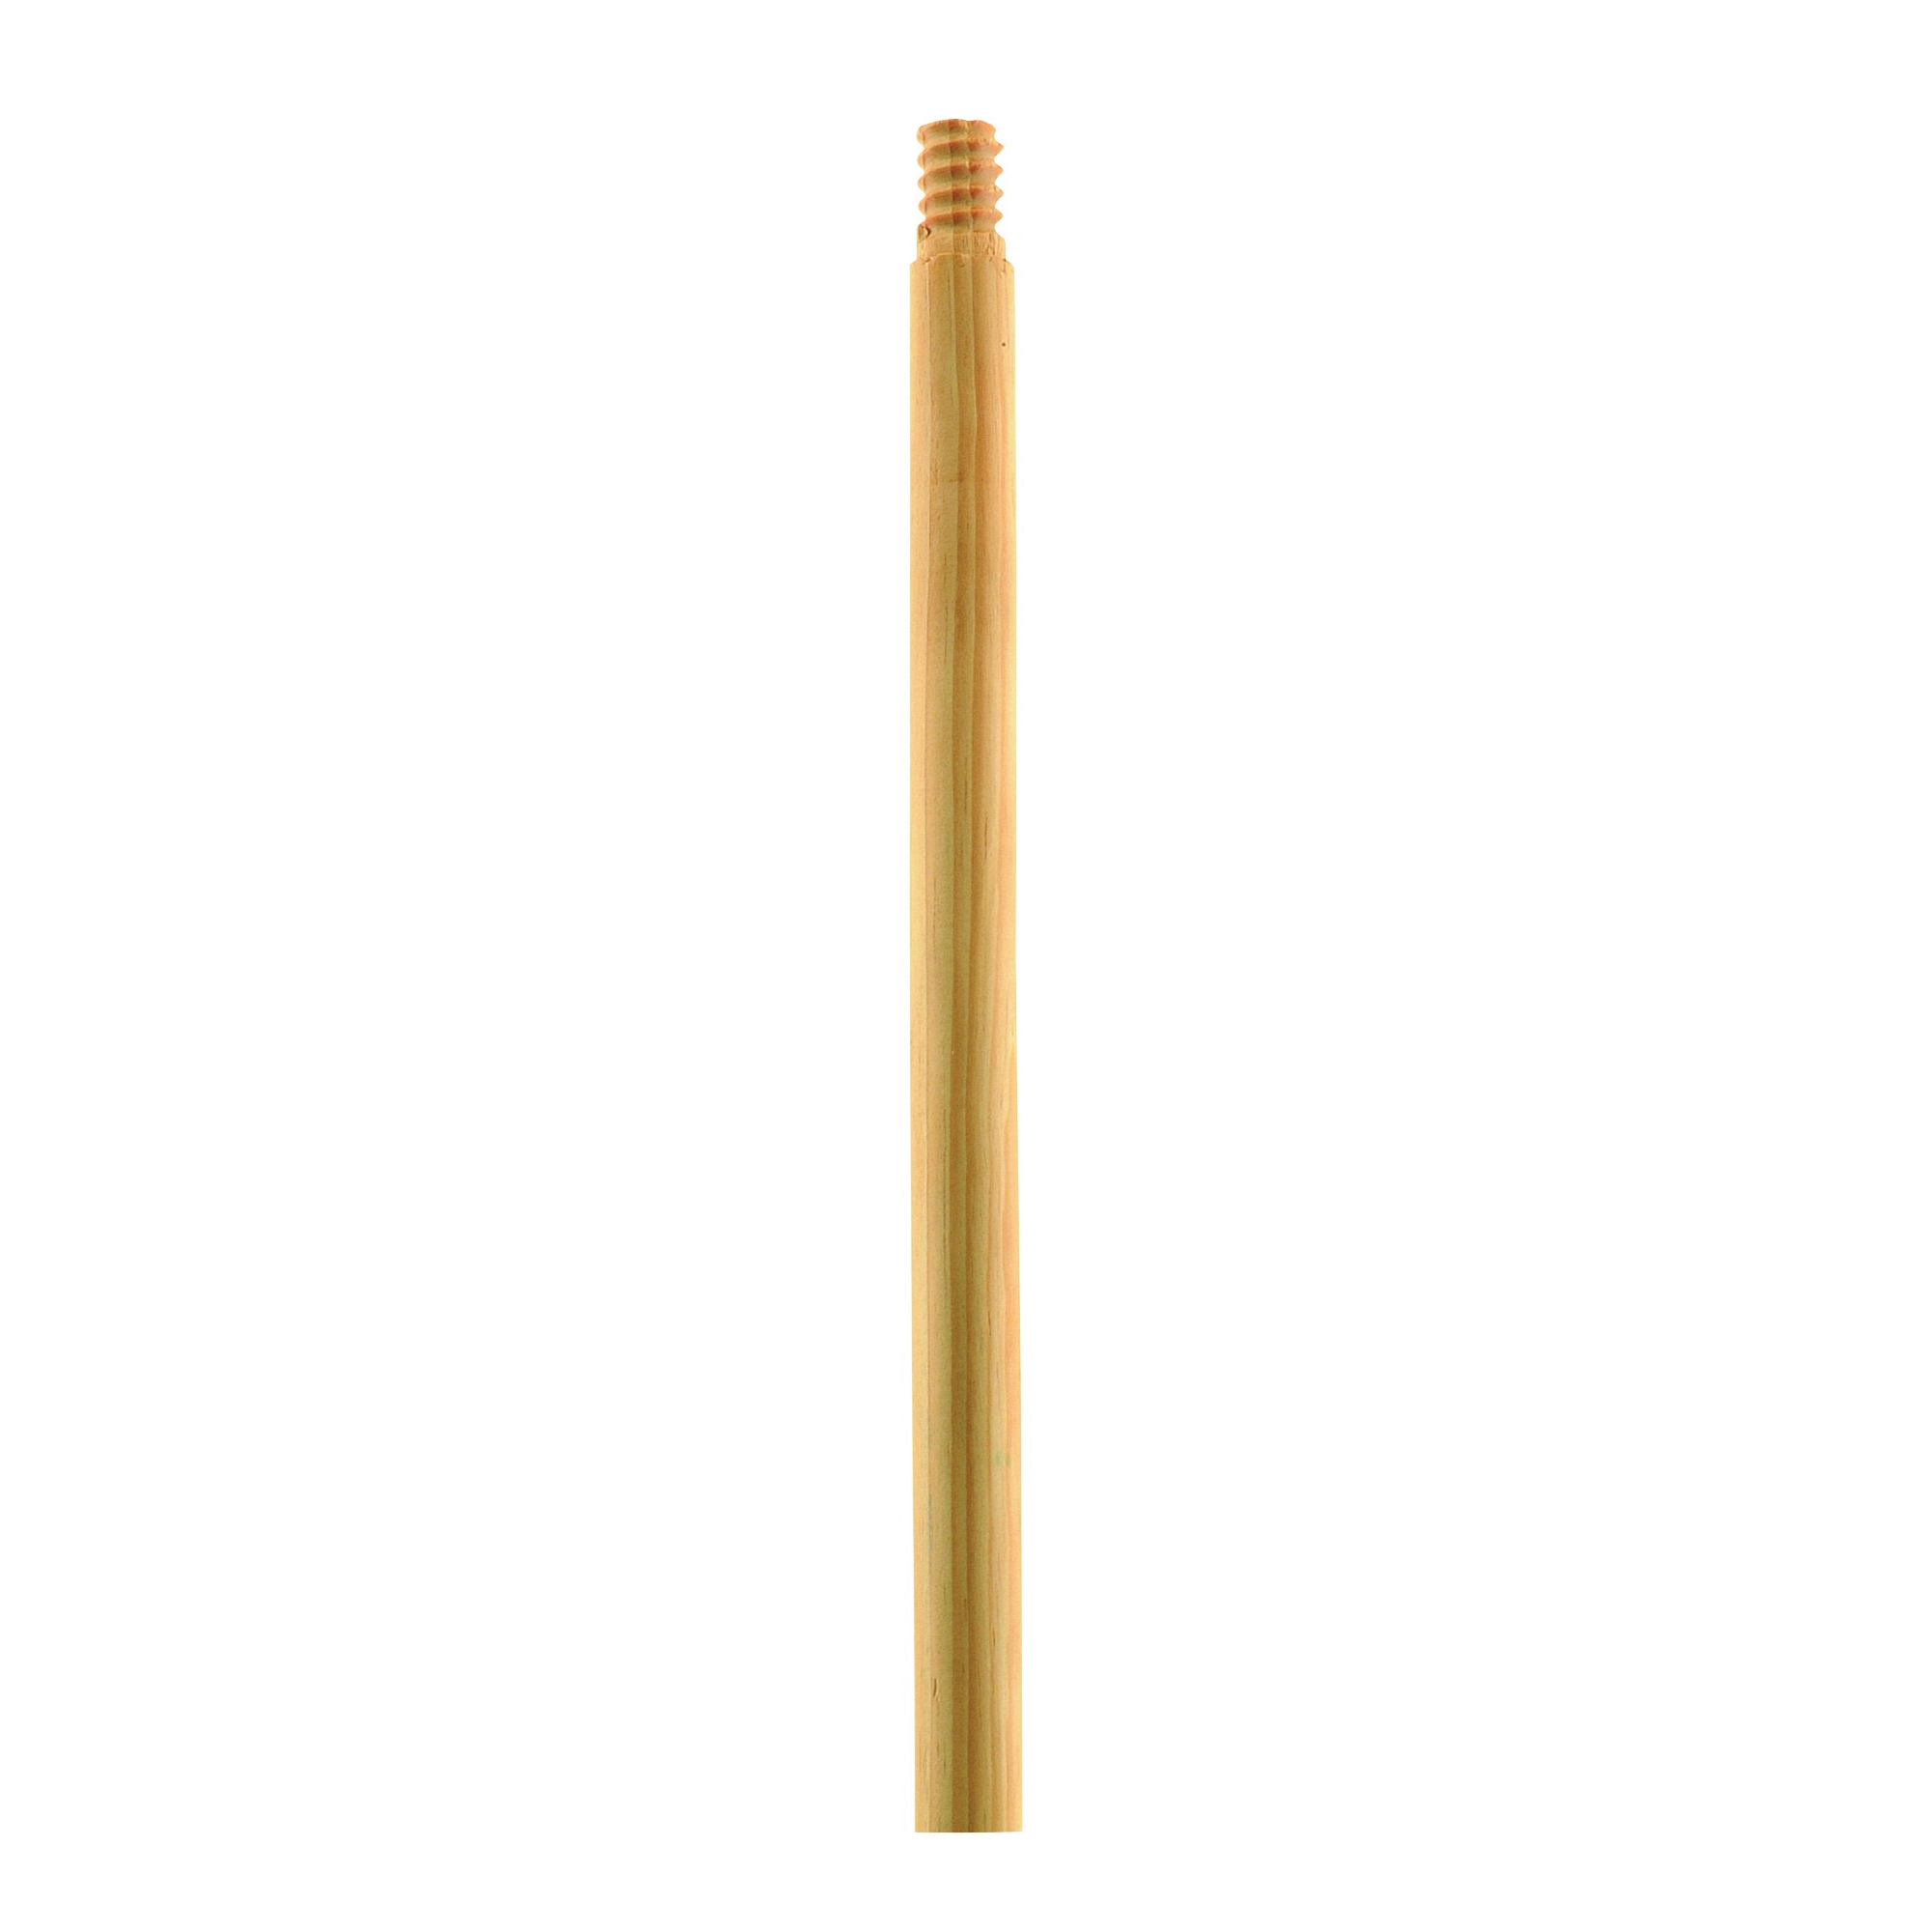 Picture of Quickie 54101 Broom Handle, 7/8 in Dia, 48 in L, Threaded, Wood